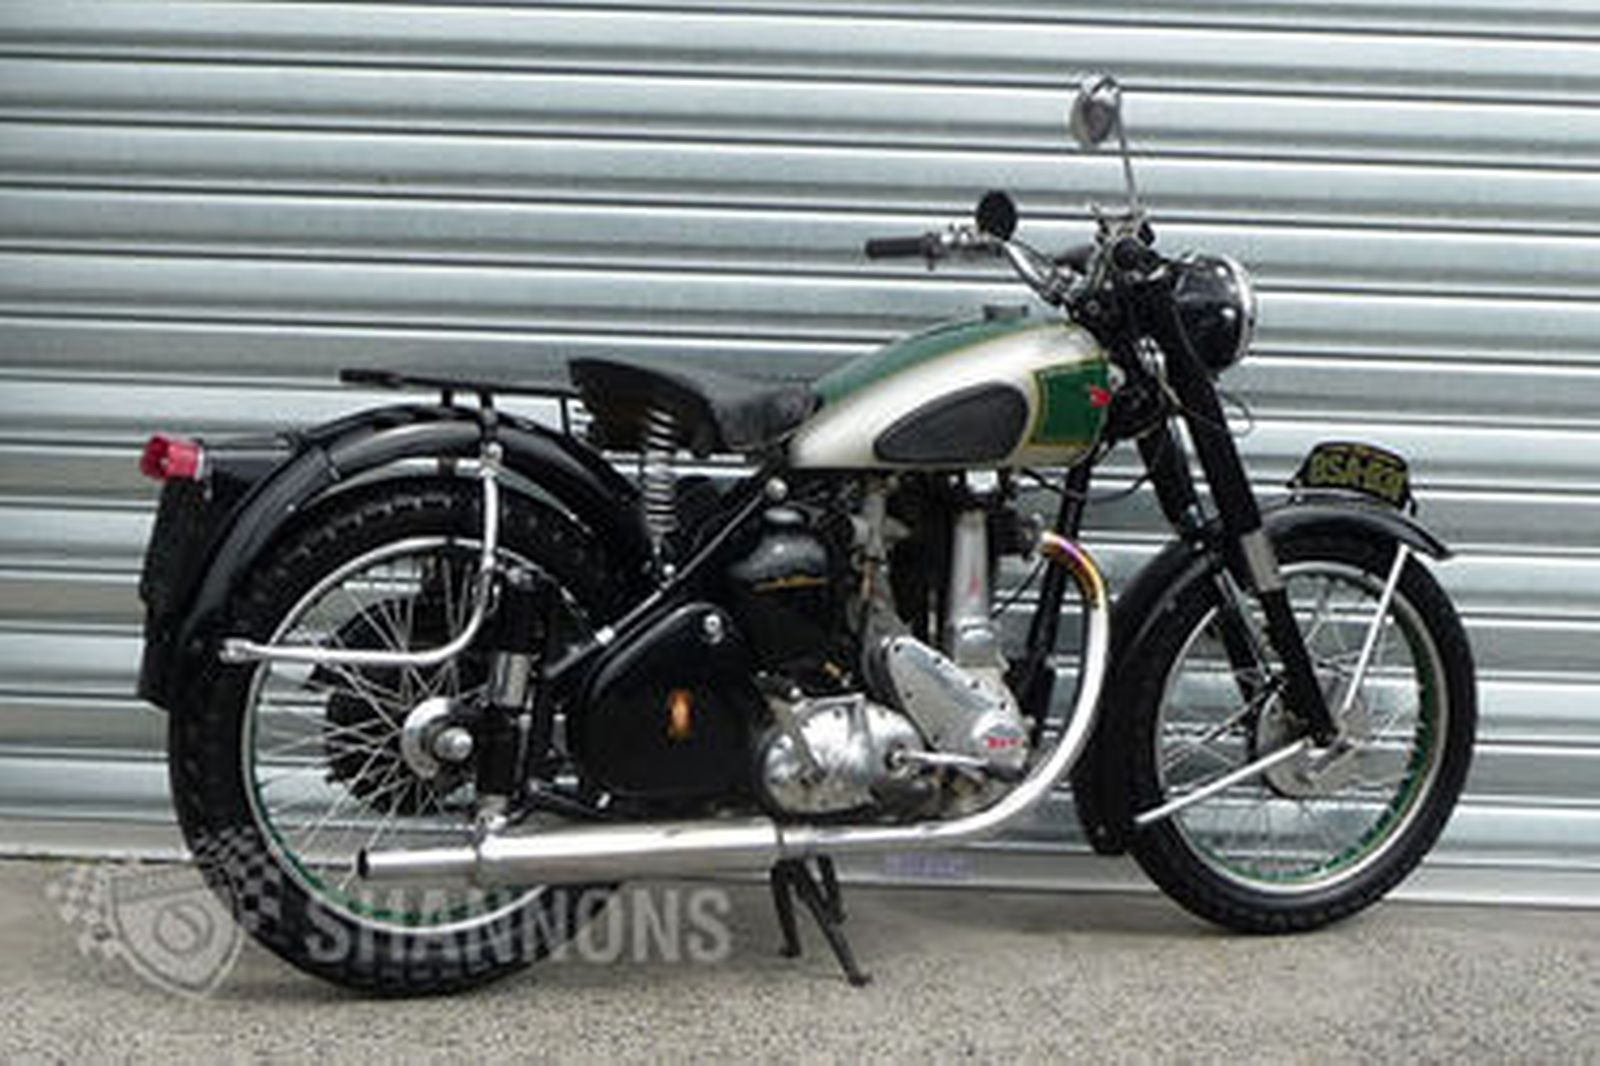 Sold  BSA B31 350cc Solo Motorcycle Auctions  Lot 8